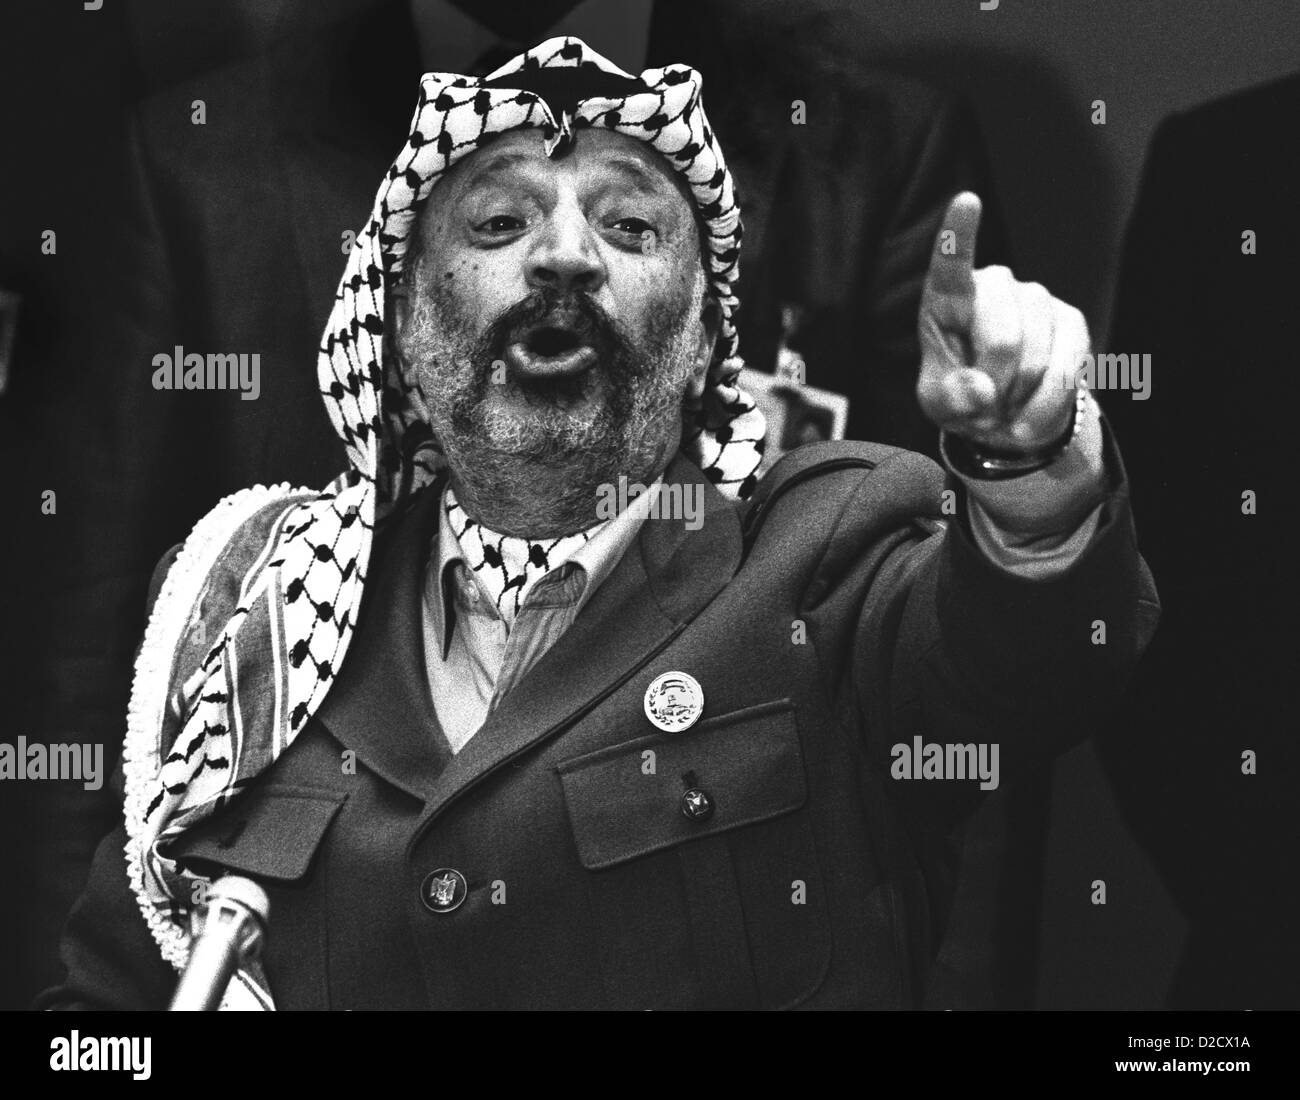 December 1988. Palestinian Leader Yasser Arafat pictured at the United Nations Geneva. - Stock Image